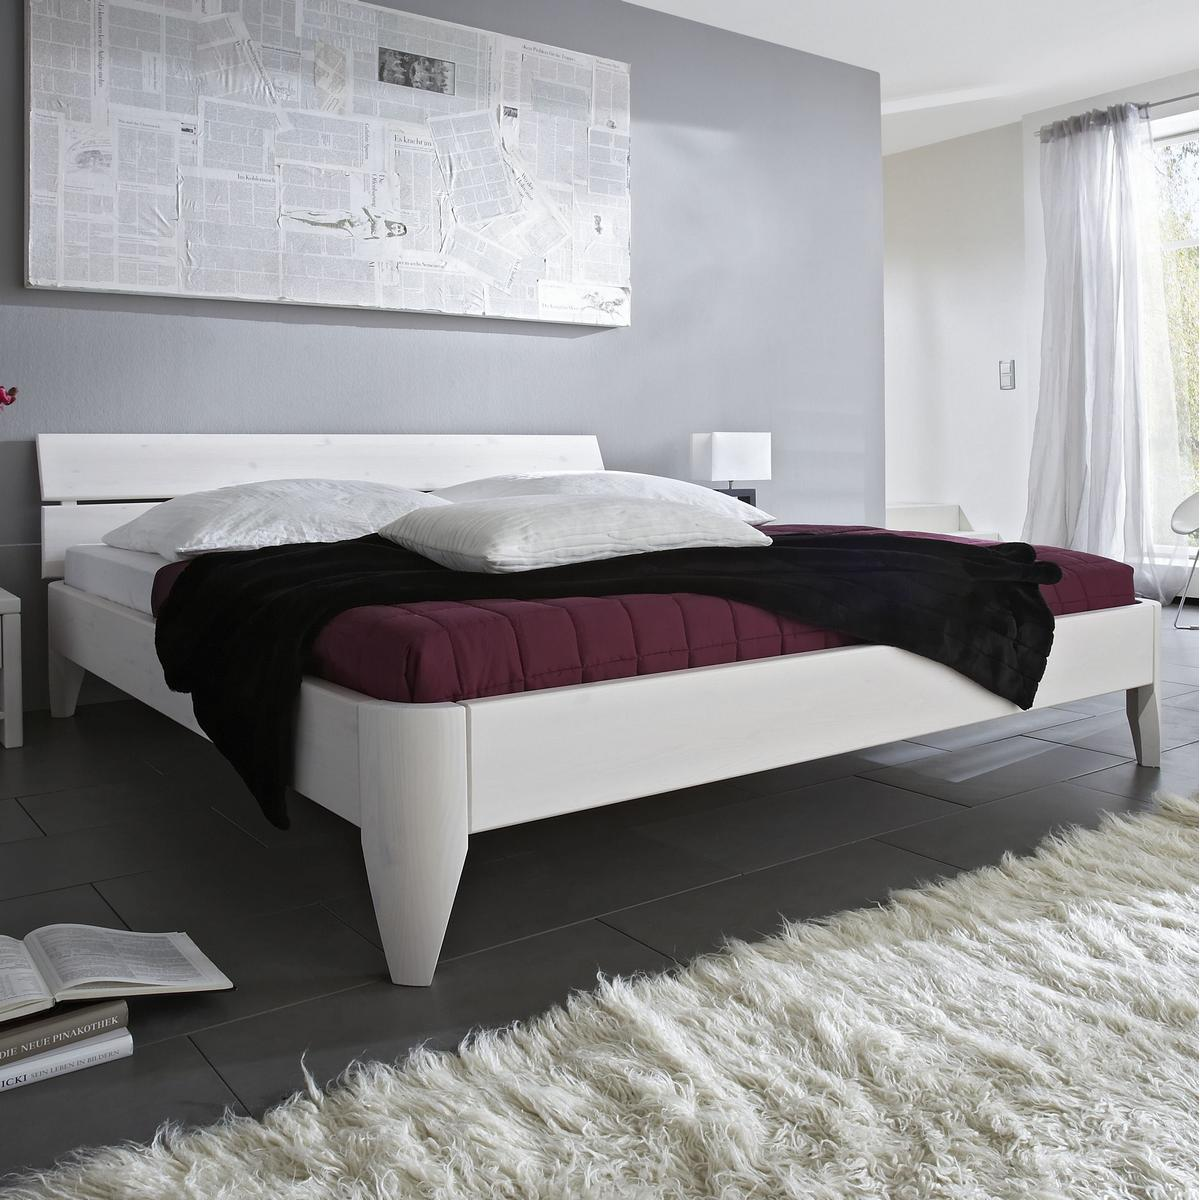 massivholz bett 120x200 easy sleep kiefer massiv wei. Black Bedroom Furniture Sets. Home Design Ideas